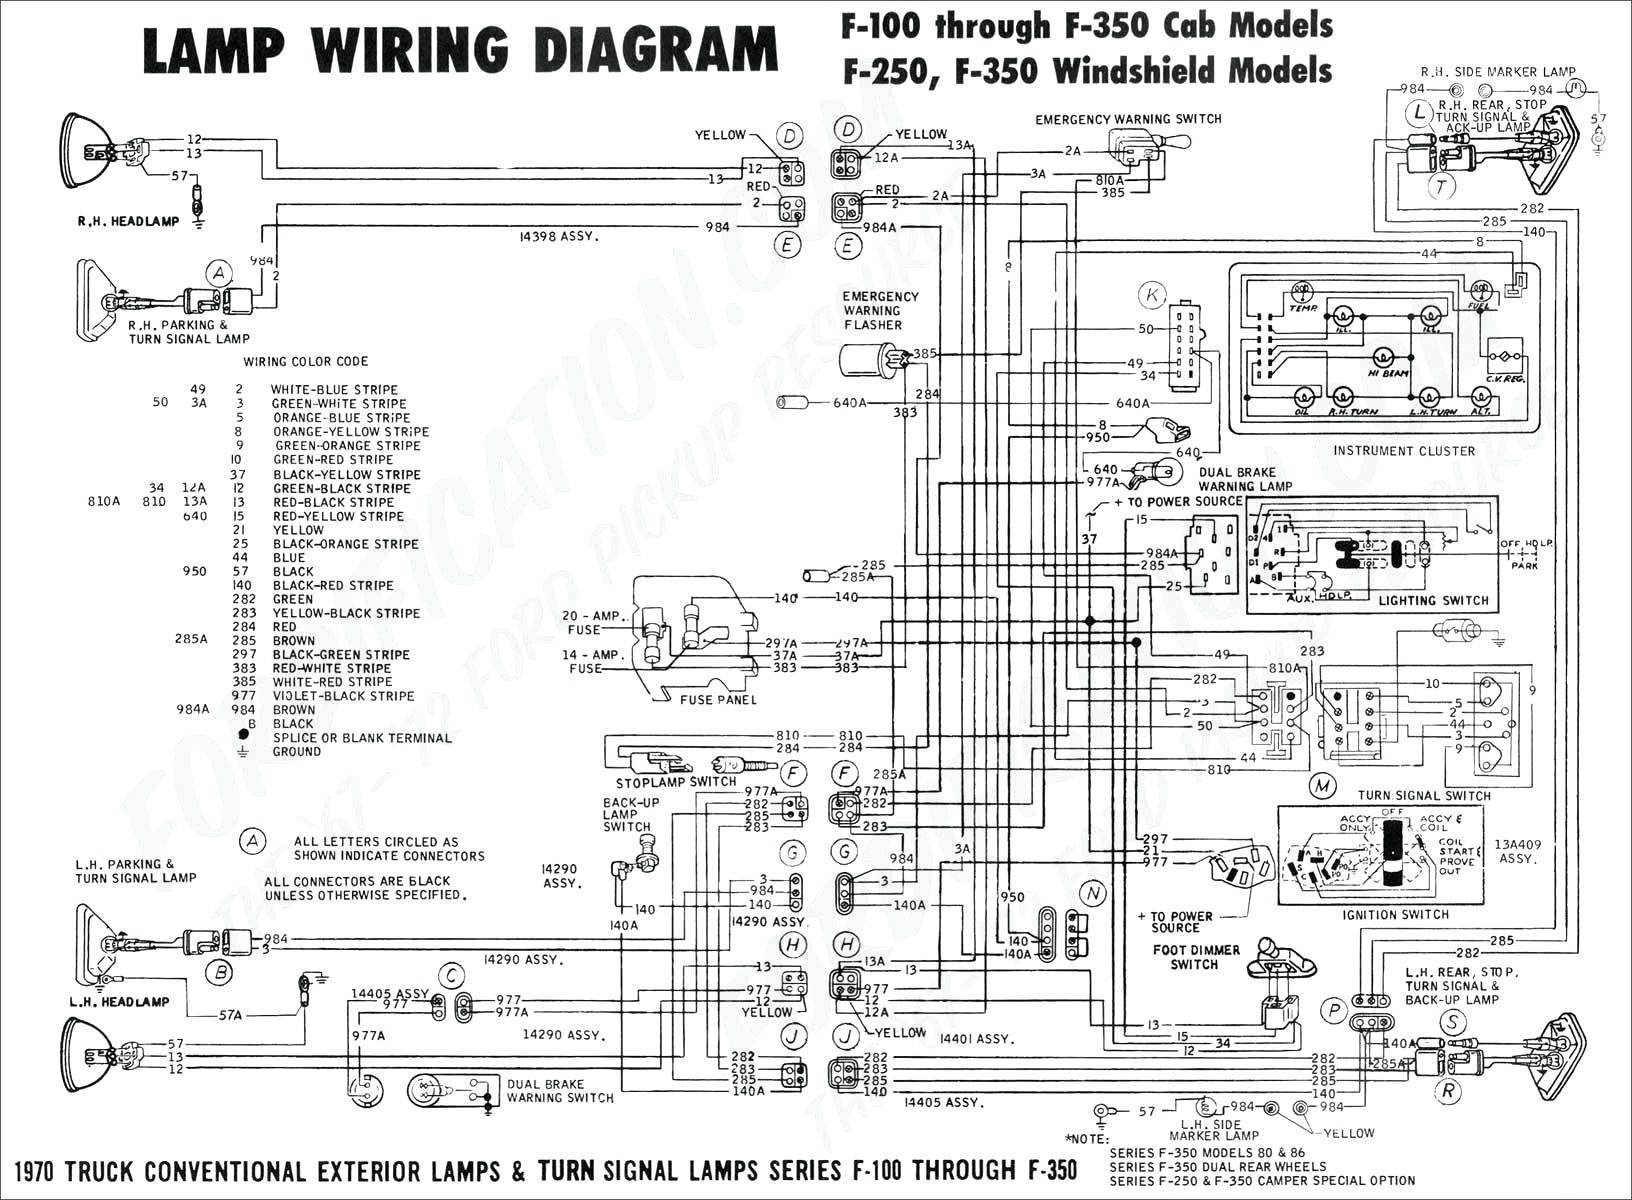 Haneline Gauges Wiring Diagram | Wiring Liry on